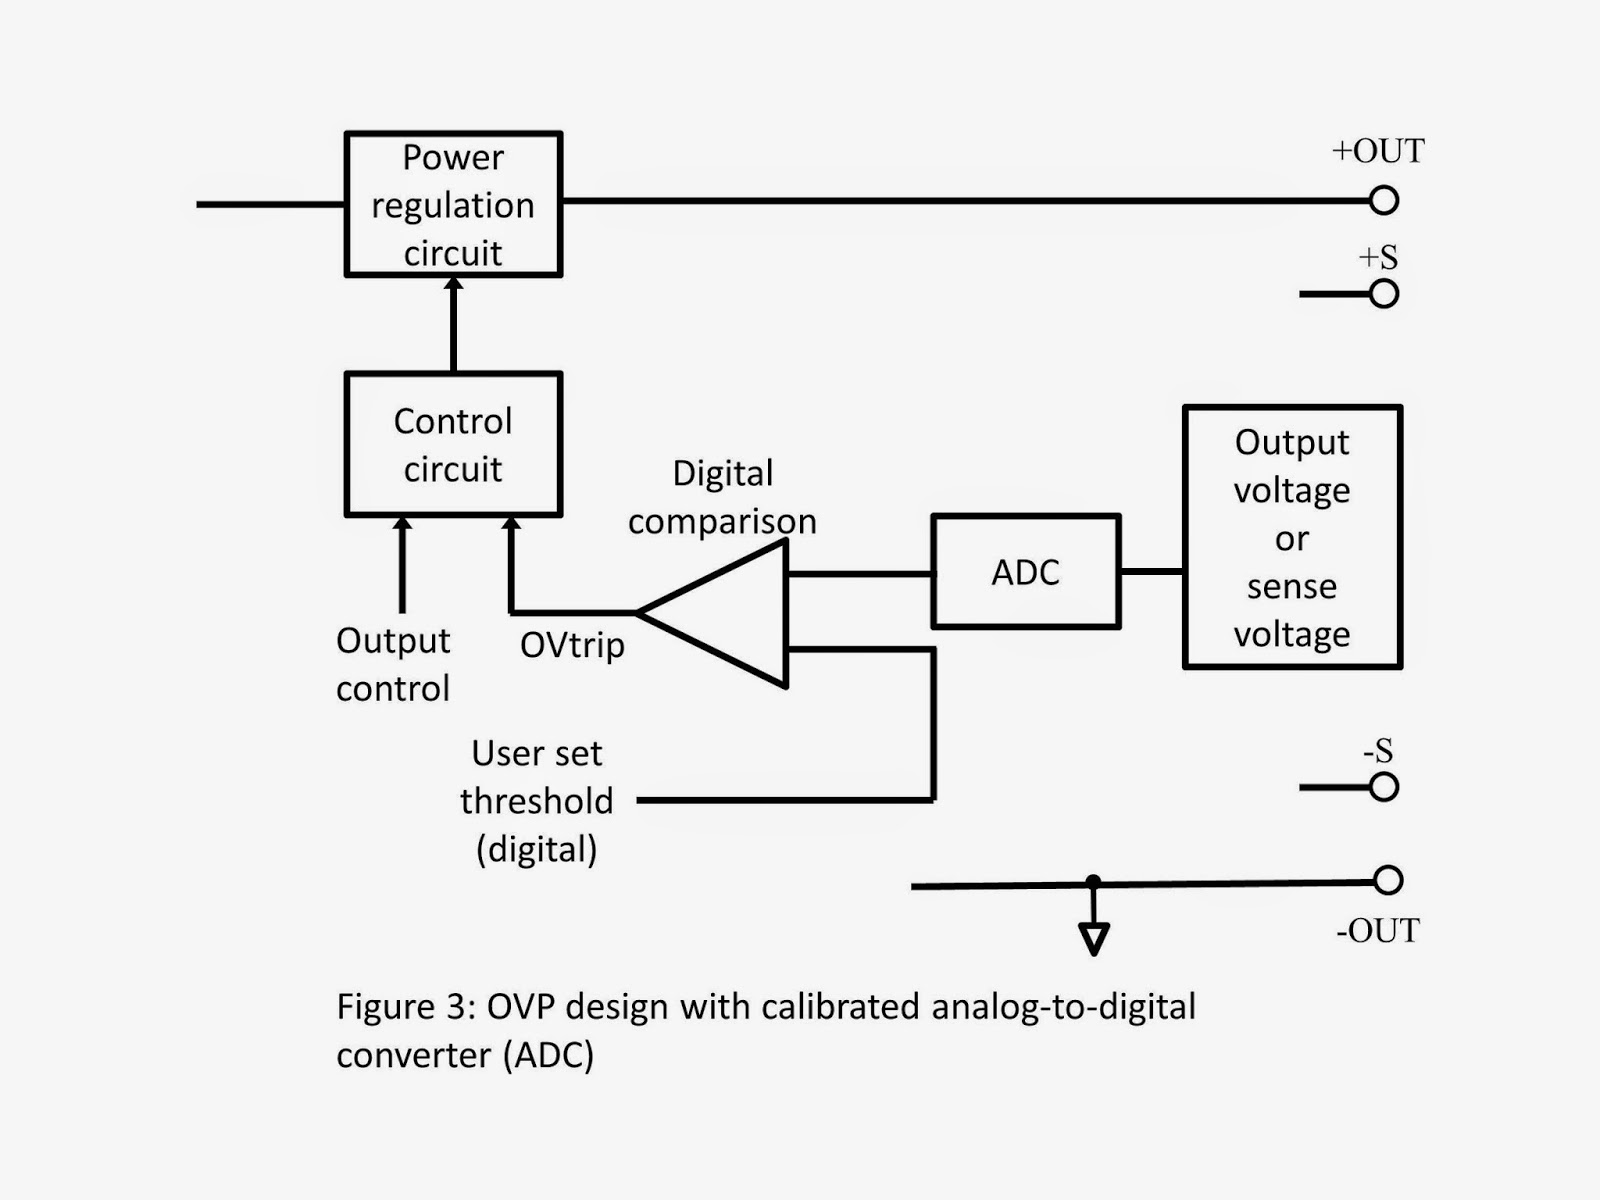 Watts Up July 2014 Ovp Wiring Diagram Since It Does An Adc Conversion Every 5 Us And Requires 4 Consecutive Conversions Exceed The Threshold To Cause A Shutdown Will Trip In Less Than 30